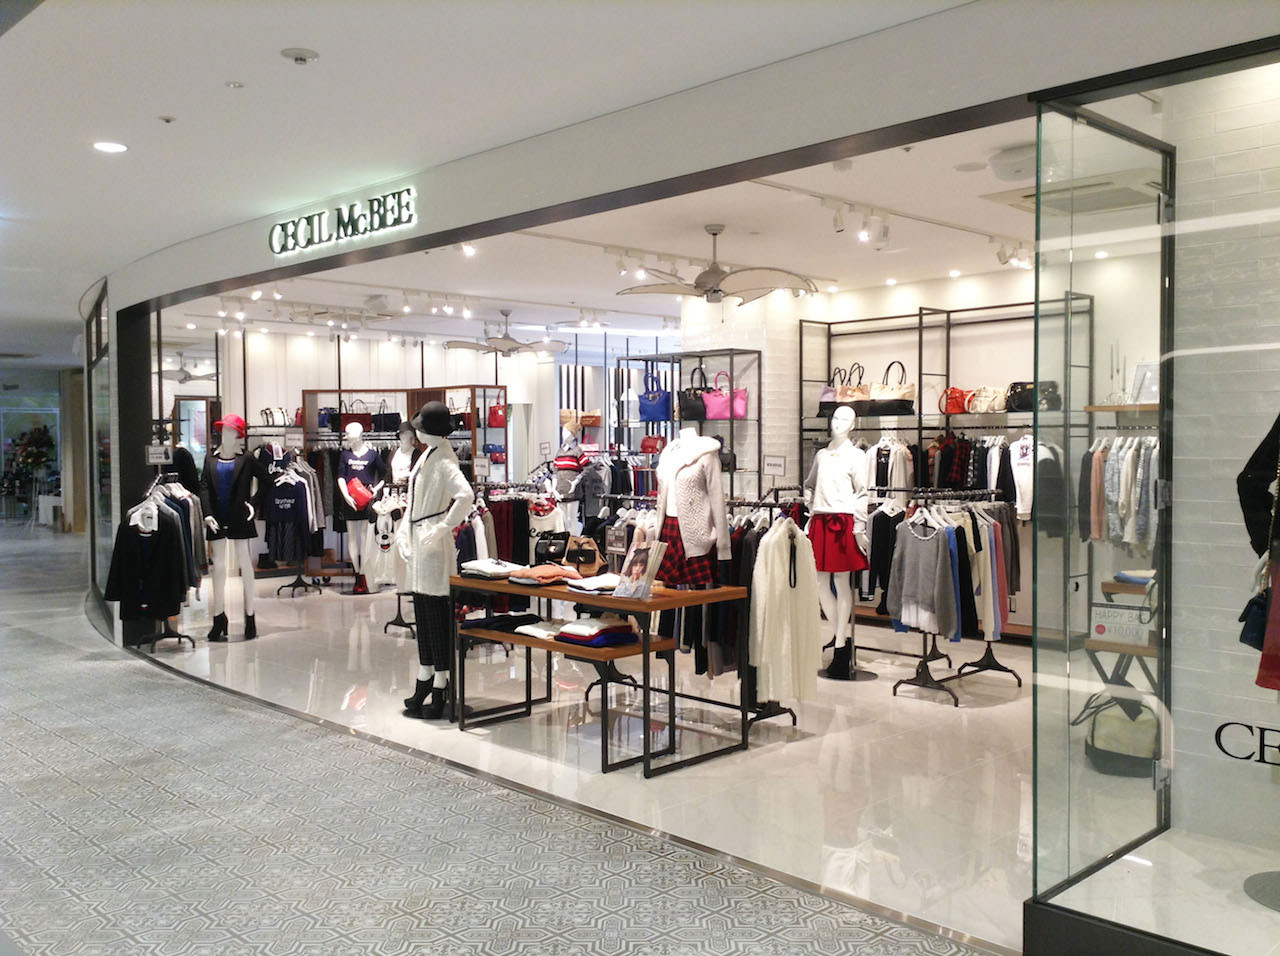 CECILMcBEE 渋谷109鹿児島店様【新装/施工】